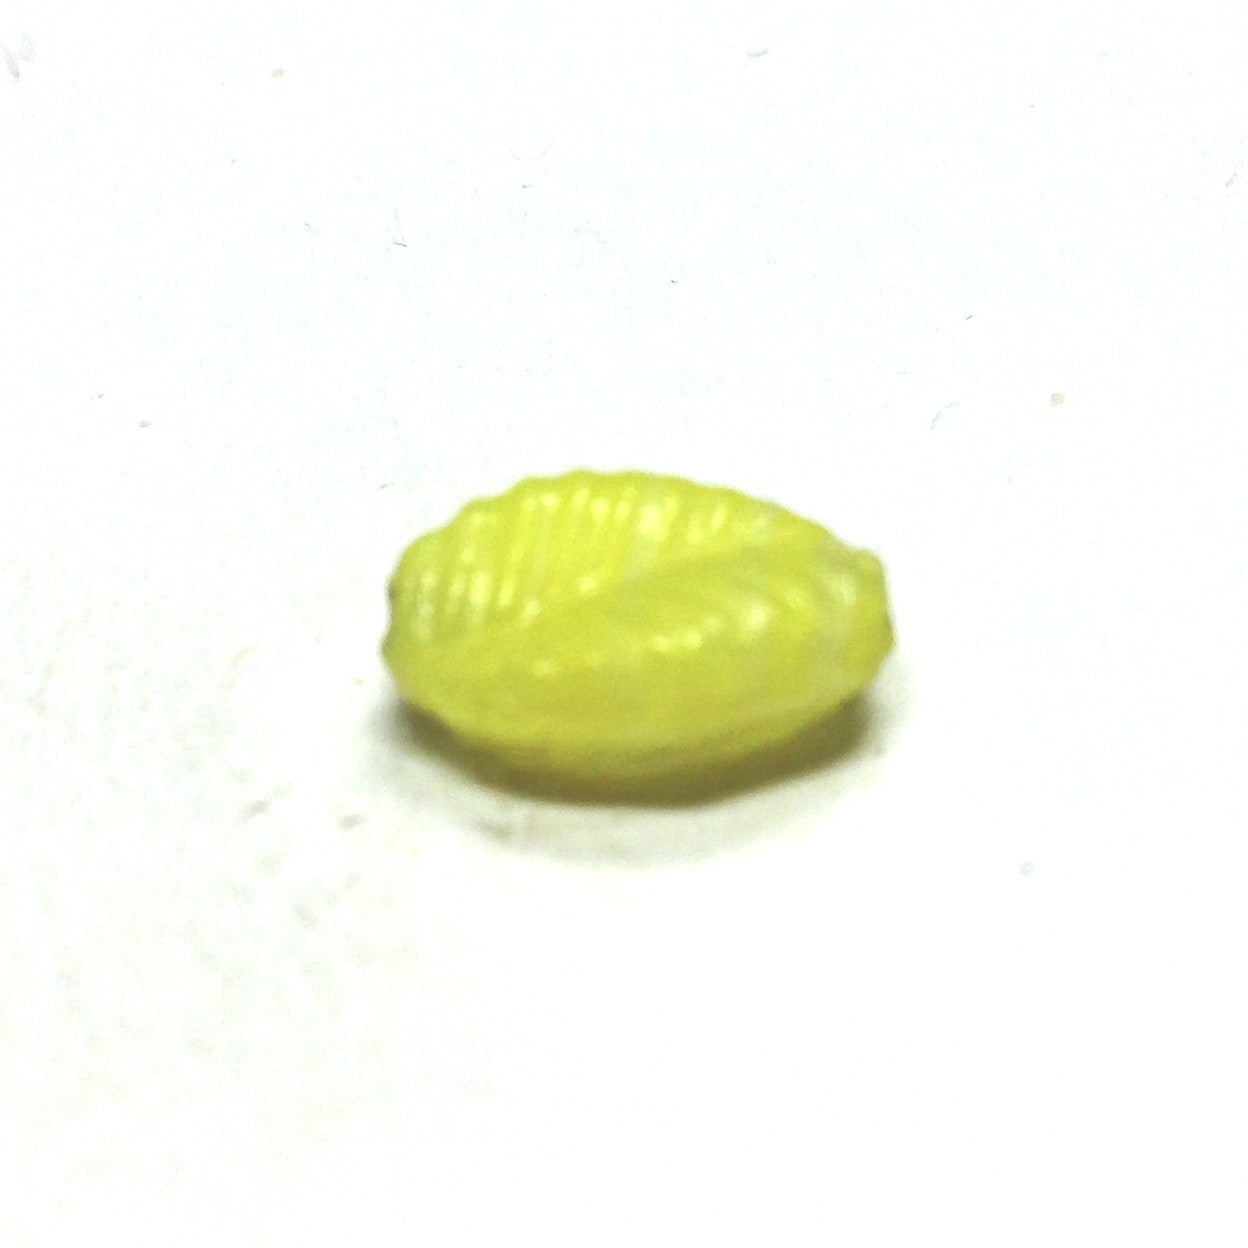 15X10MM Yellow Glass Leaf Bead (36 pieces)